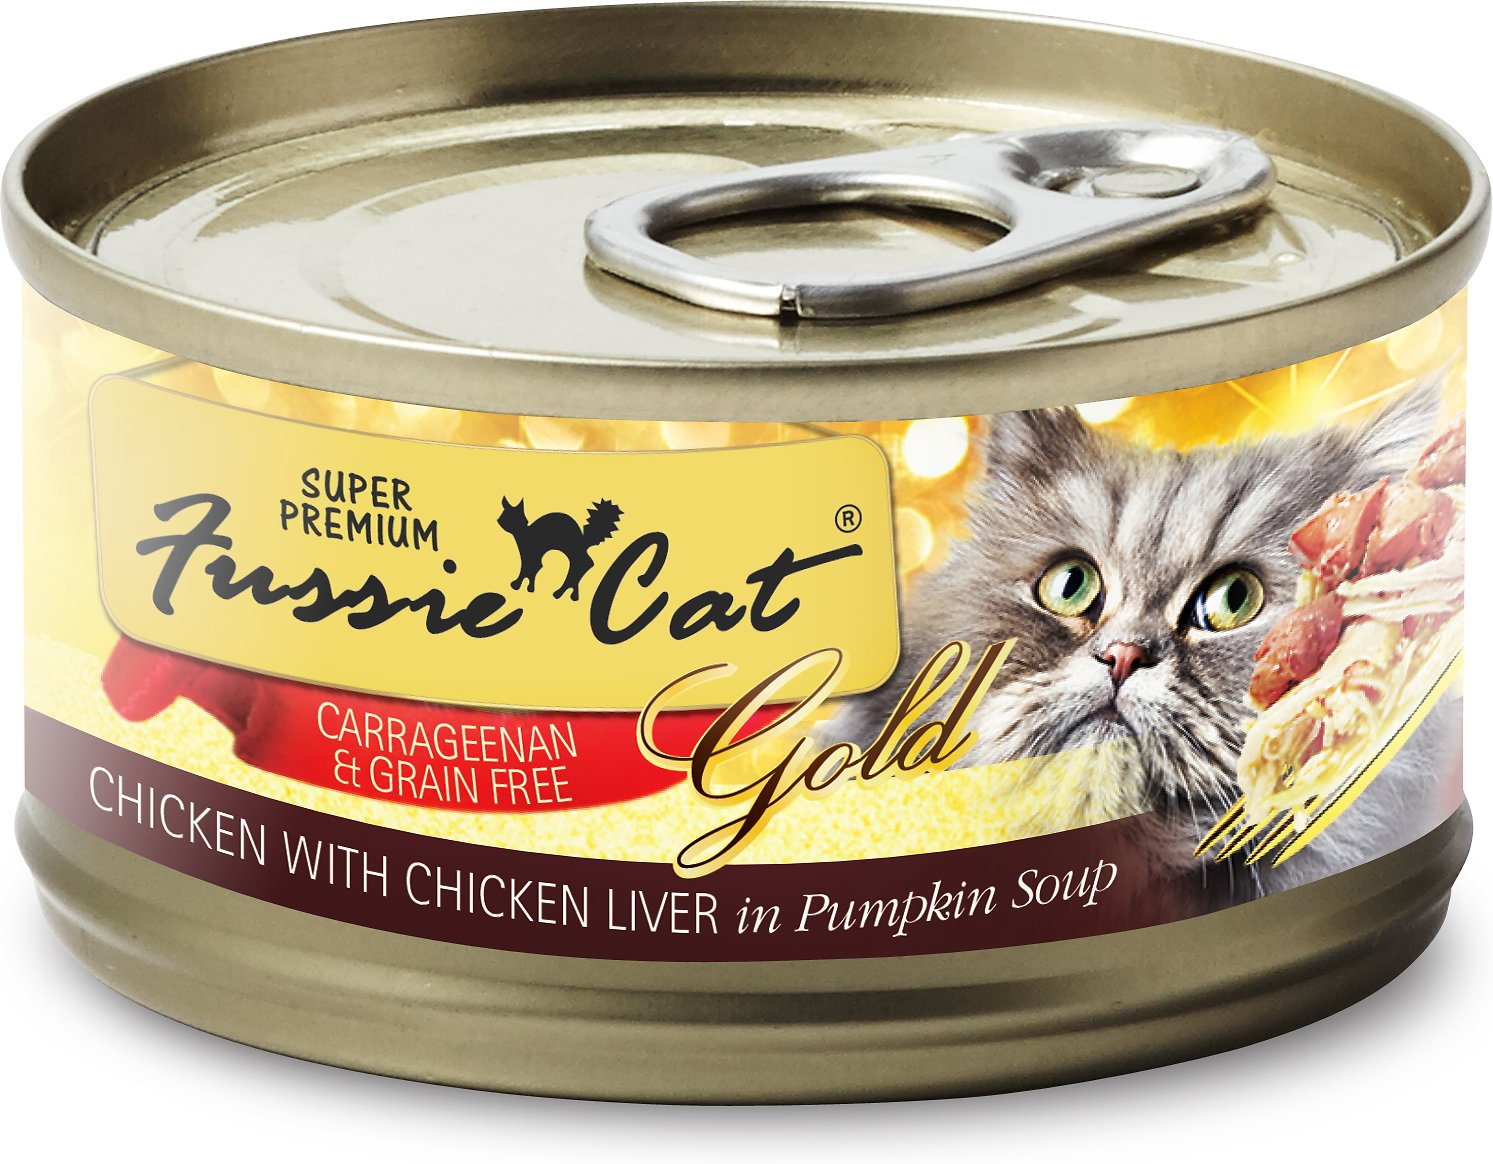 Fussie Cat Super Premium Chicken with Chicken Liver Formula in Pumpkin Soup Grain-Free Canned Cat Food, 2.8-oz